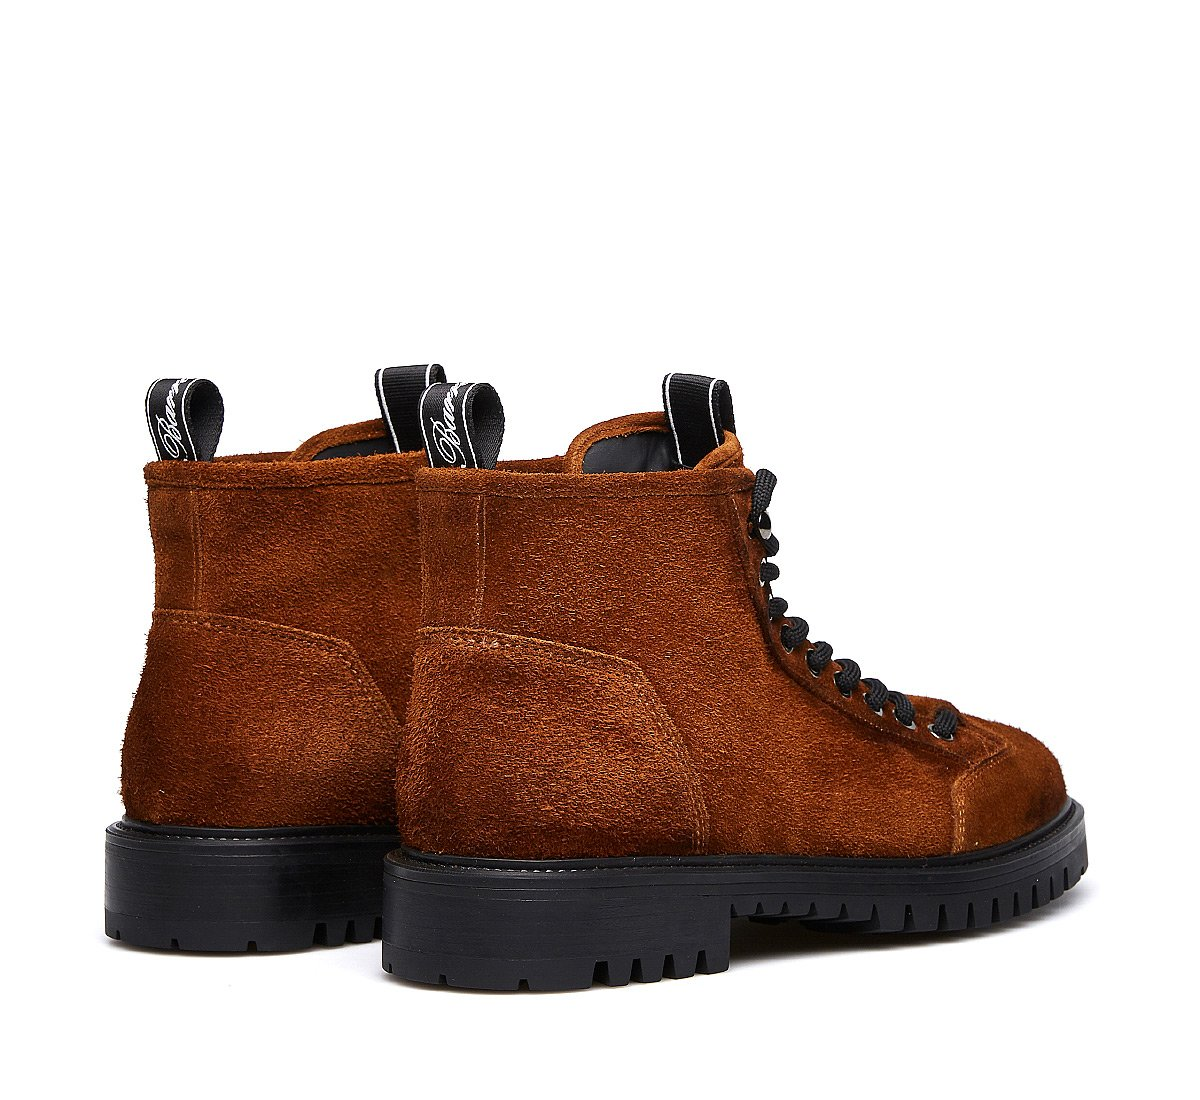 Barracuda ankle boots in soft calfskin